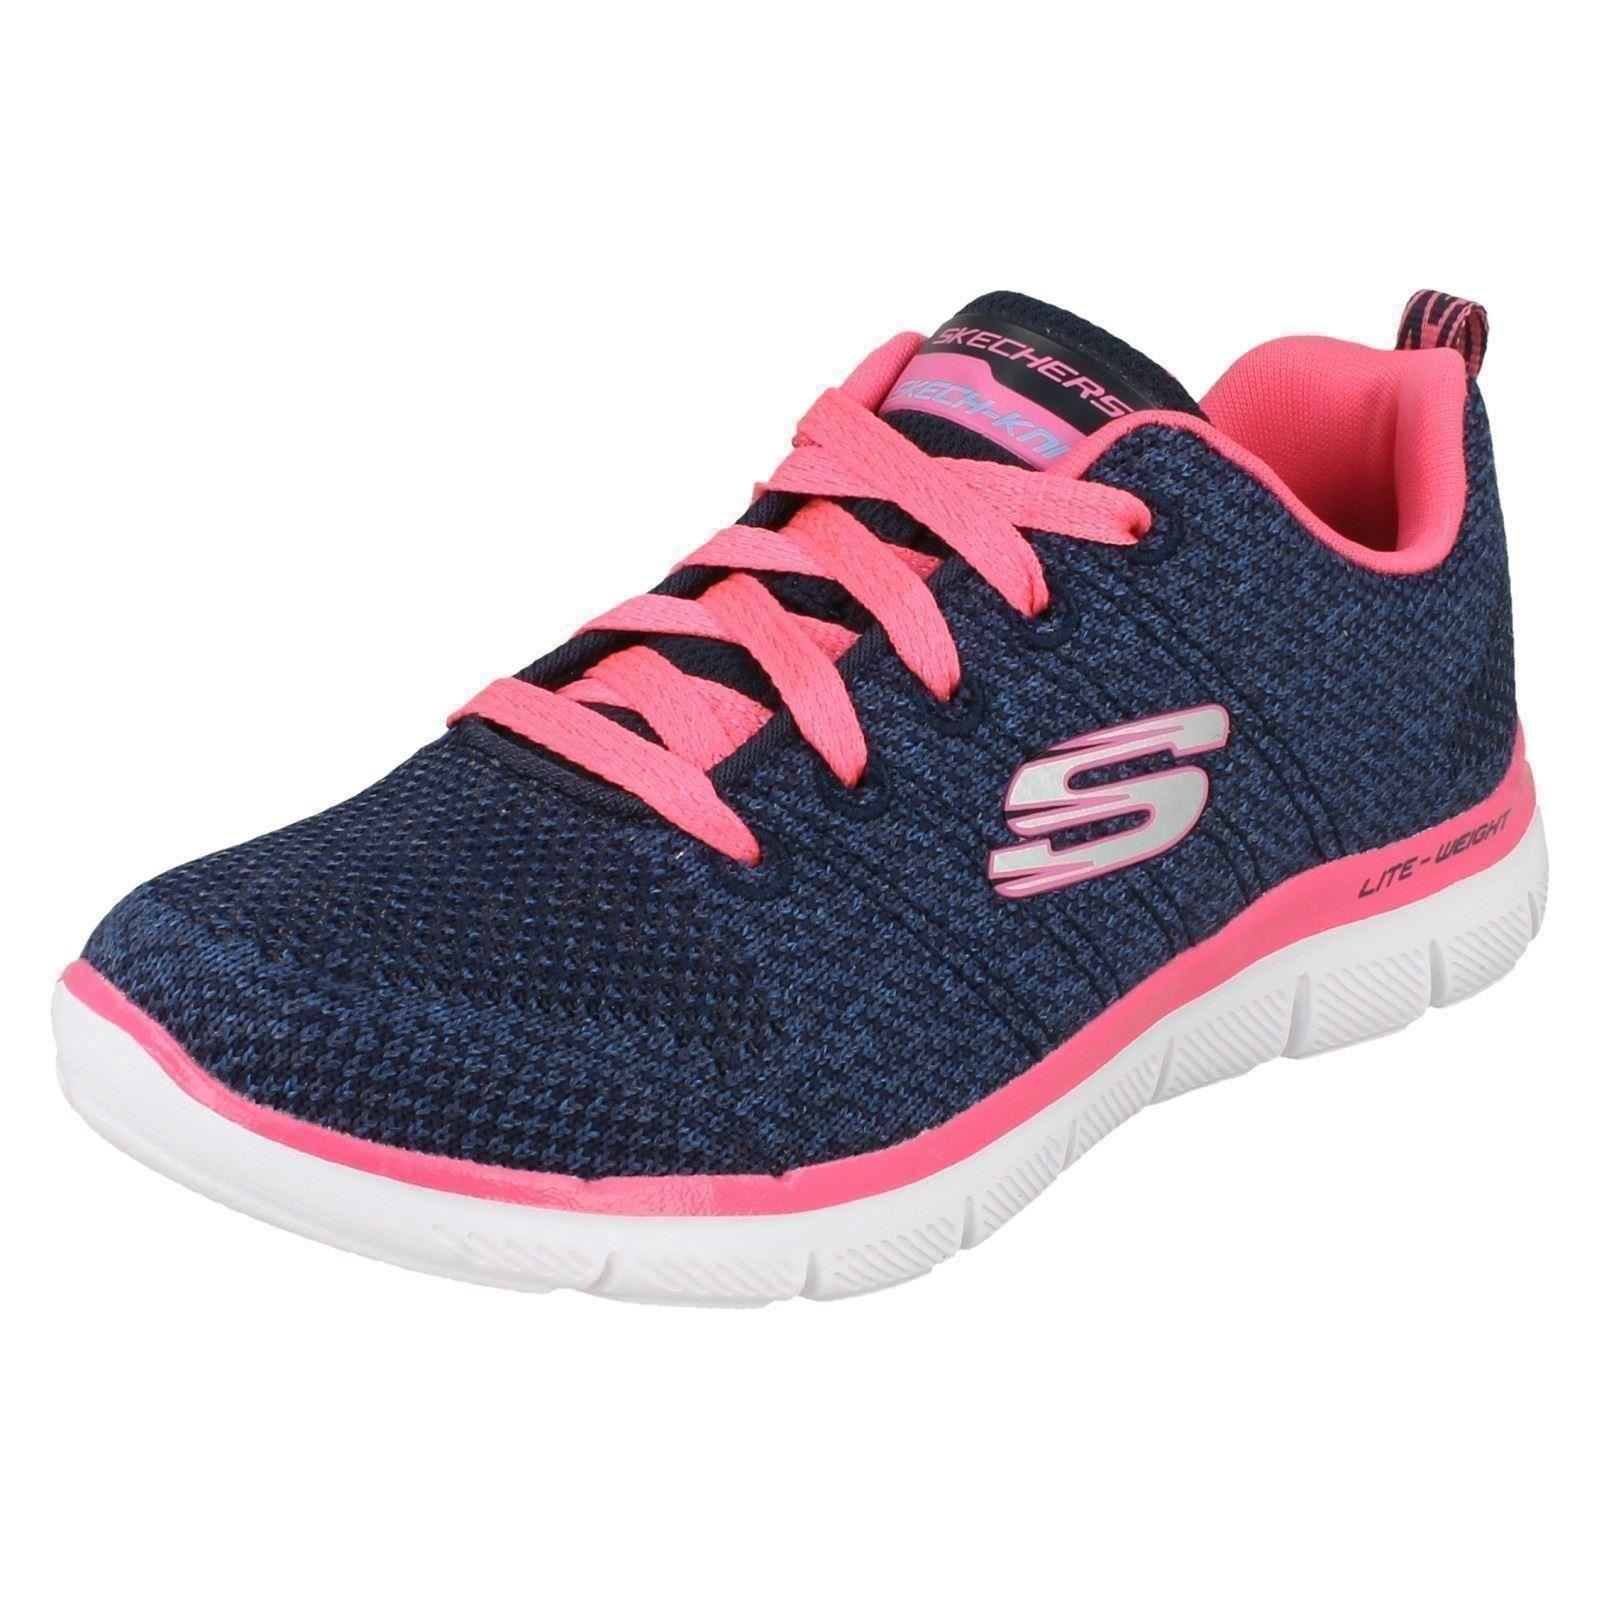 skechers shoes for girls